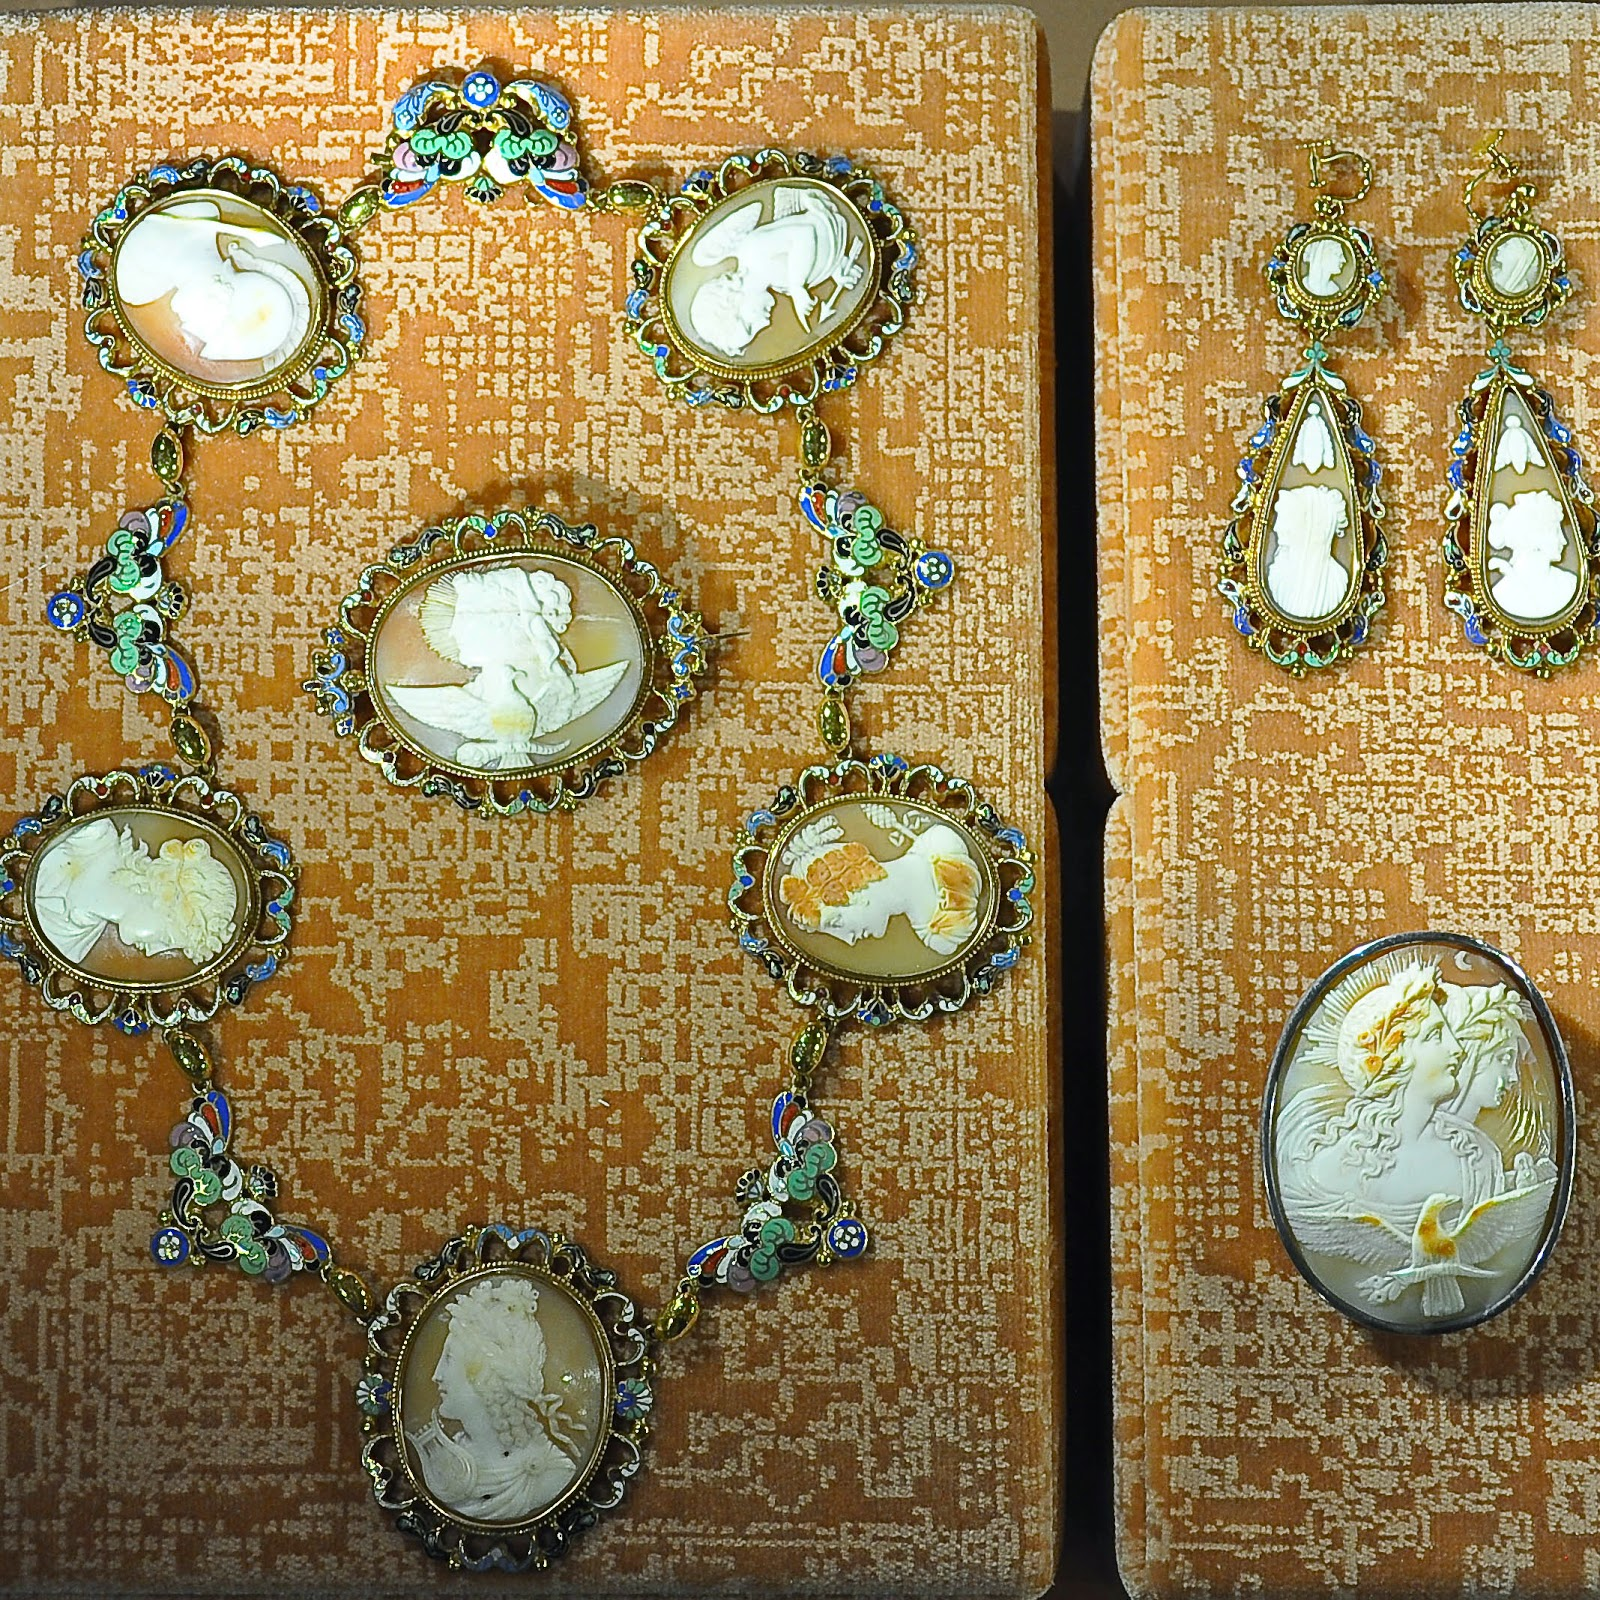 A cameo set in the Museum of the Jewellery in Vicenza